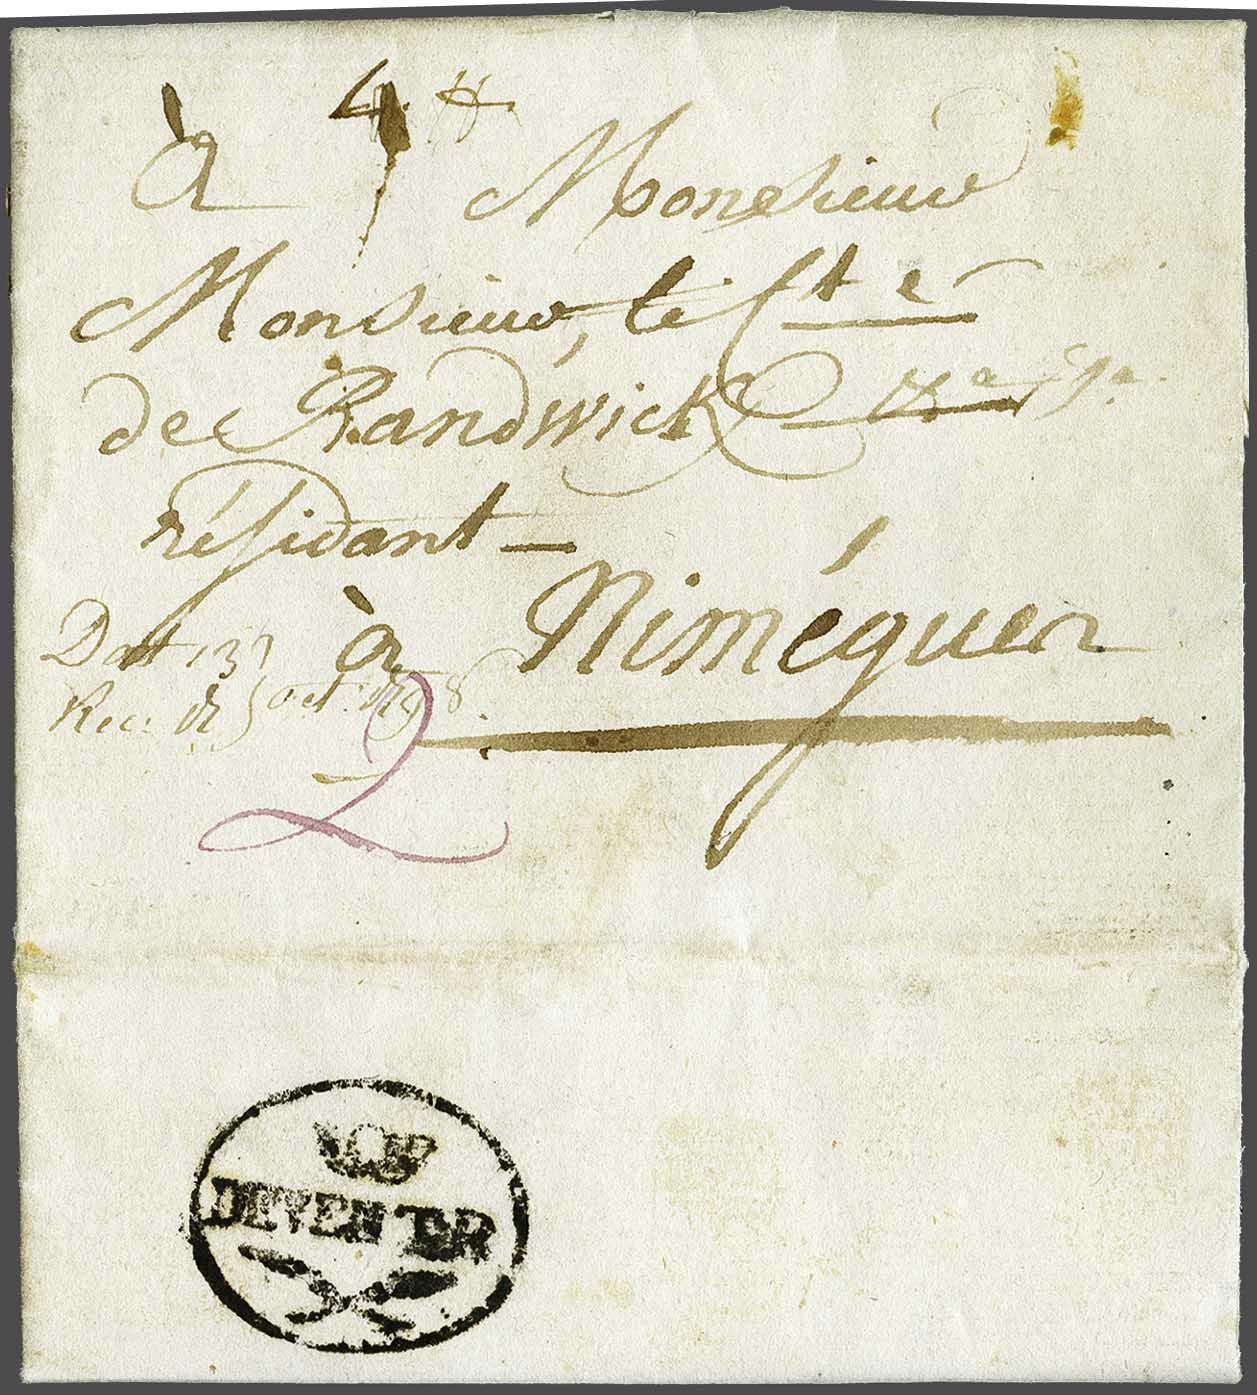 Lot 3021 - Netherlands and former colonies Netherlands -  Corinphila Veilingen Auction 244 -Netherlands and former colonies, WW2 Postal History, Bosnia, German and British colonies, Egypt. - Day 3